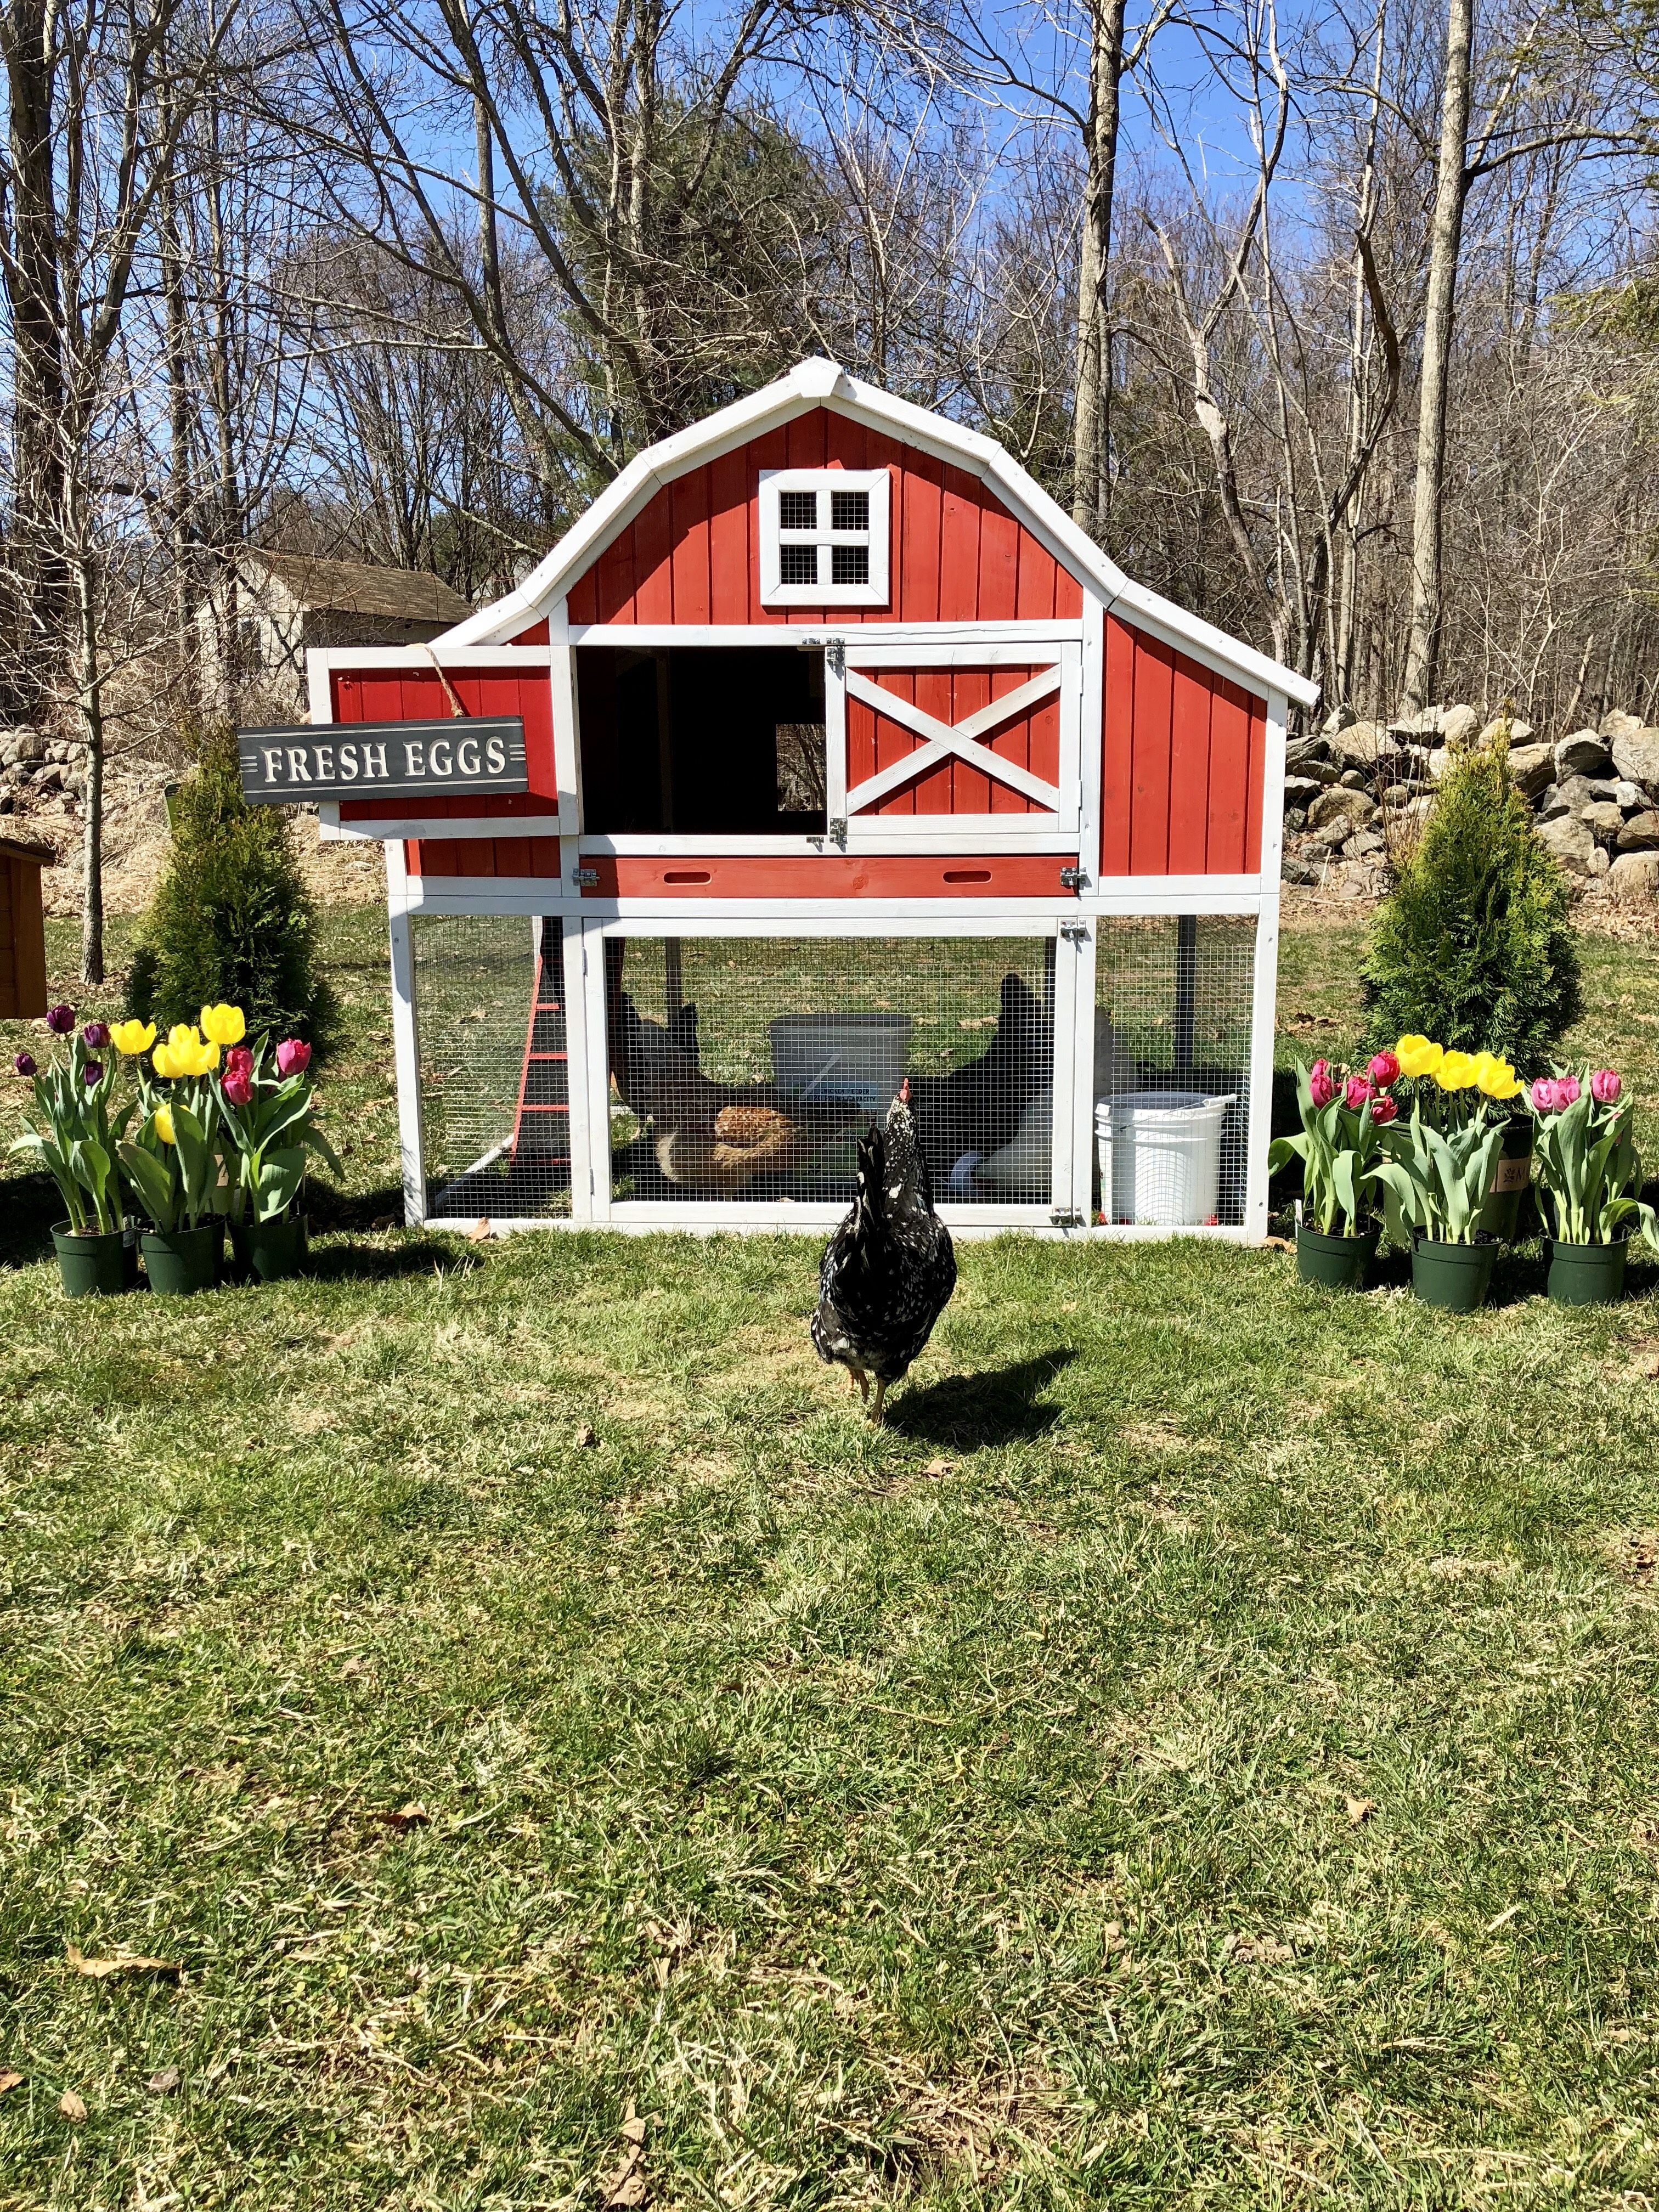 The Gambrel Roof Xl Chicken Coop 9 12 Chickens Pet Chickens